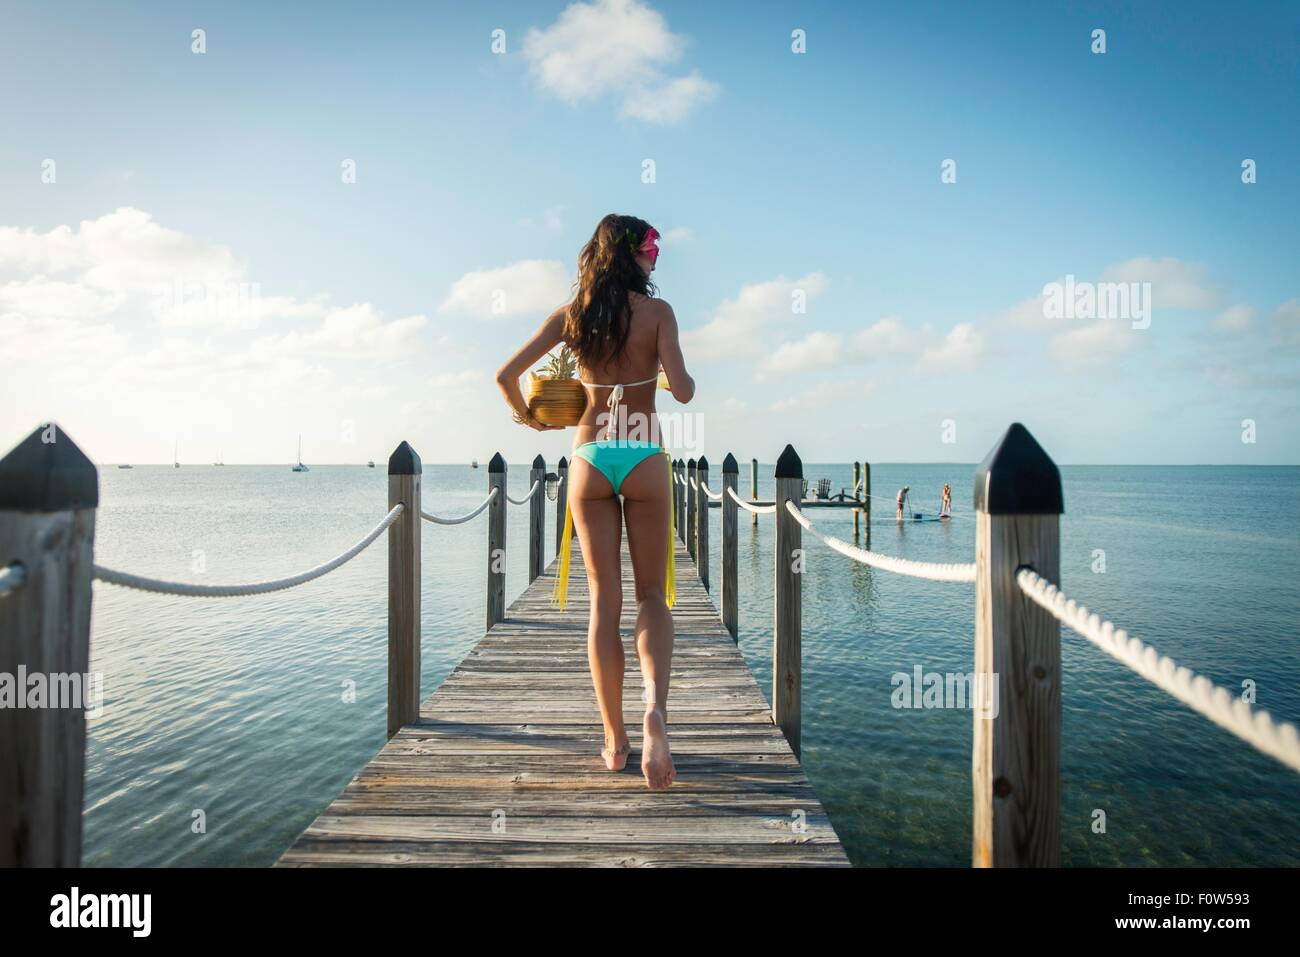 Rear view of young woman on sea pier carrying bowl of fruit, Islamorada, Florida, USA - Stock Image